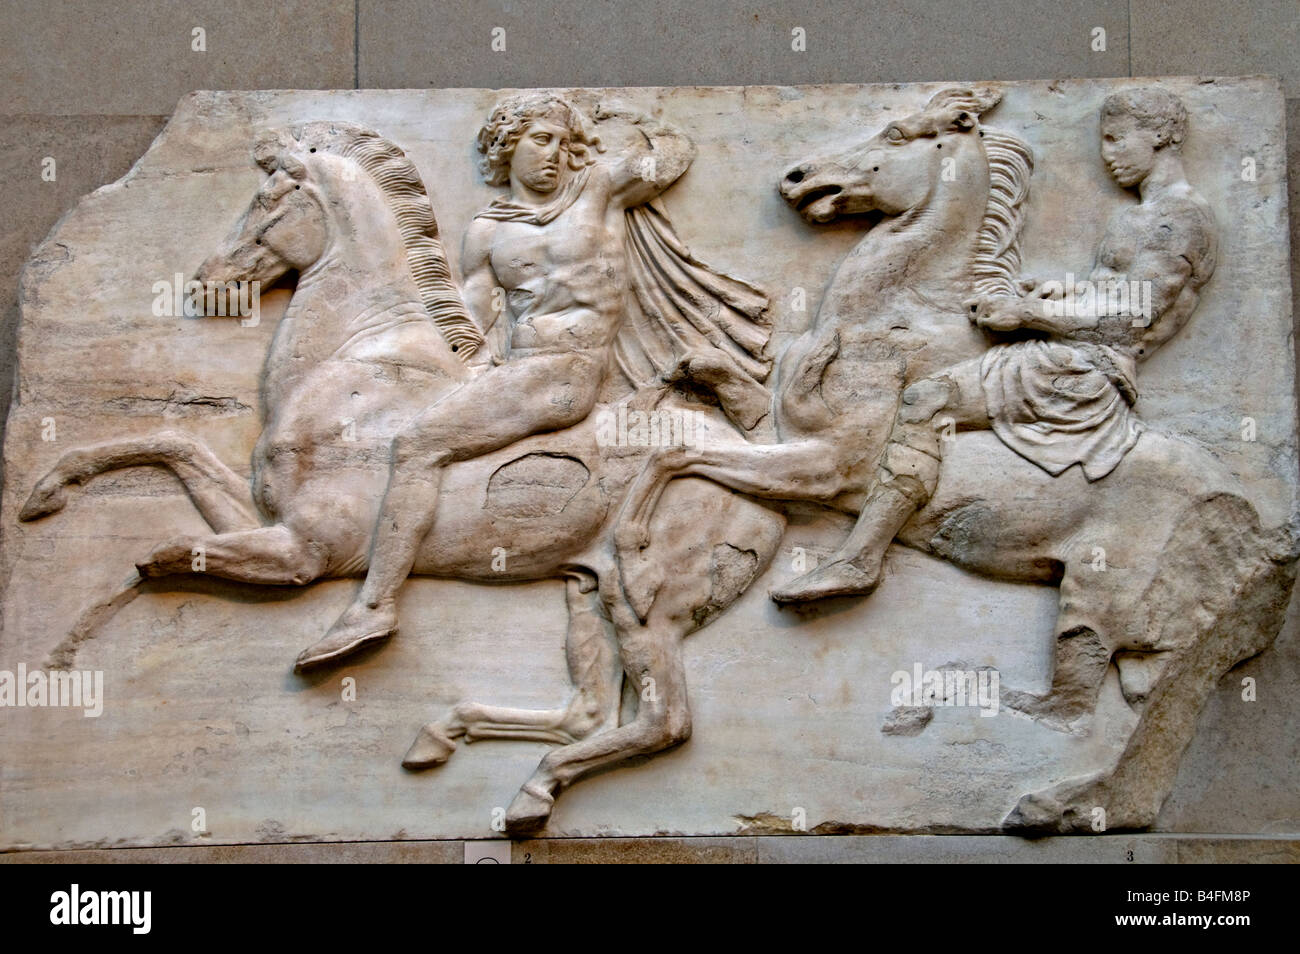 greek elgin marbles from the temple parthenon acropolis in athens